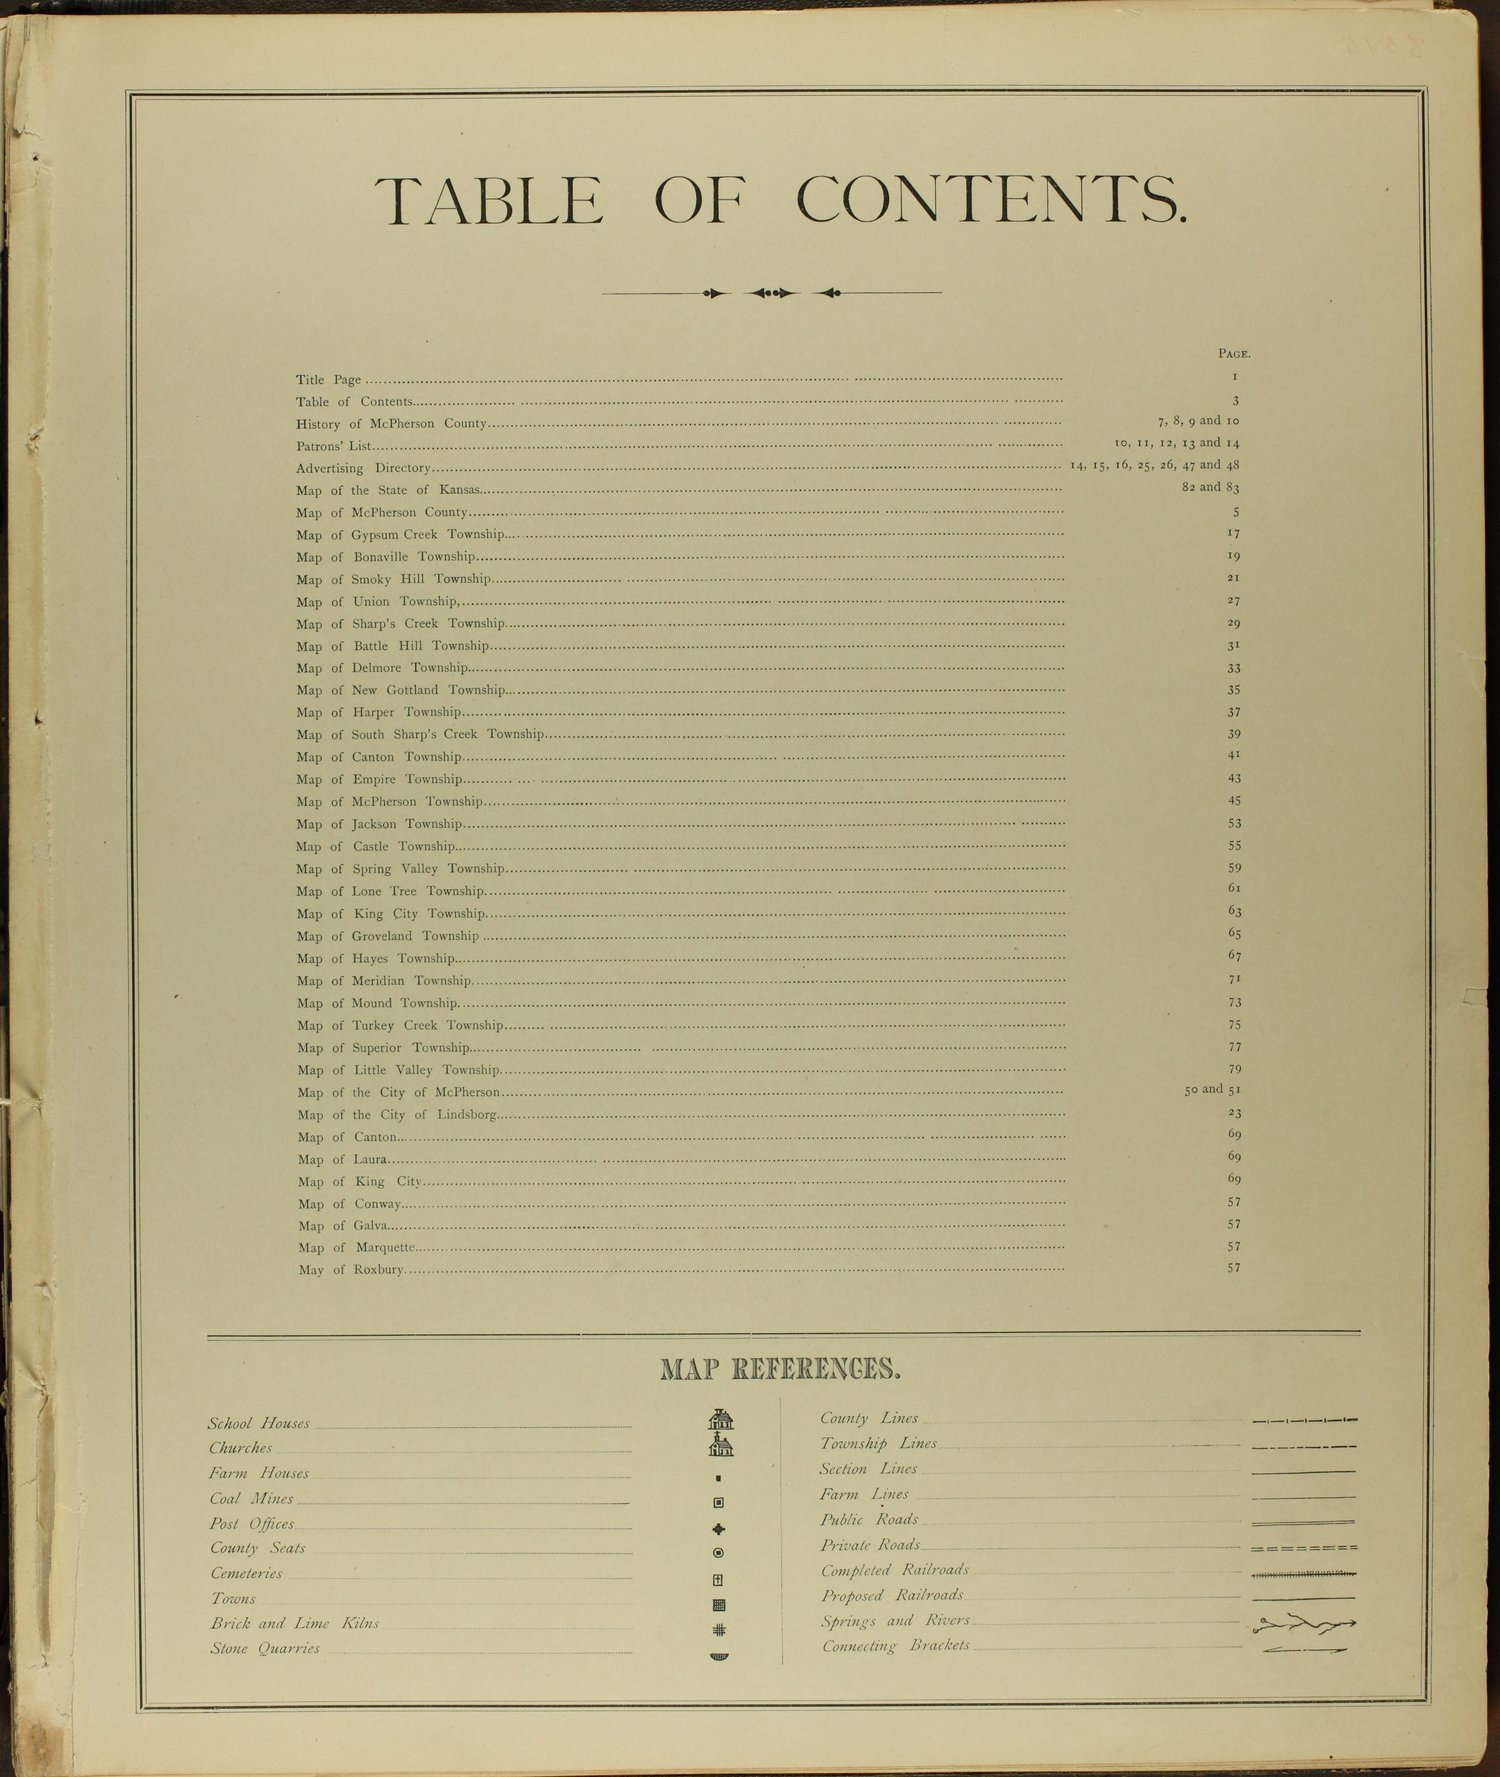 Edwards' atlas of McPherson County, Kansas - Table of Contents